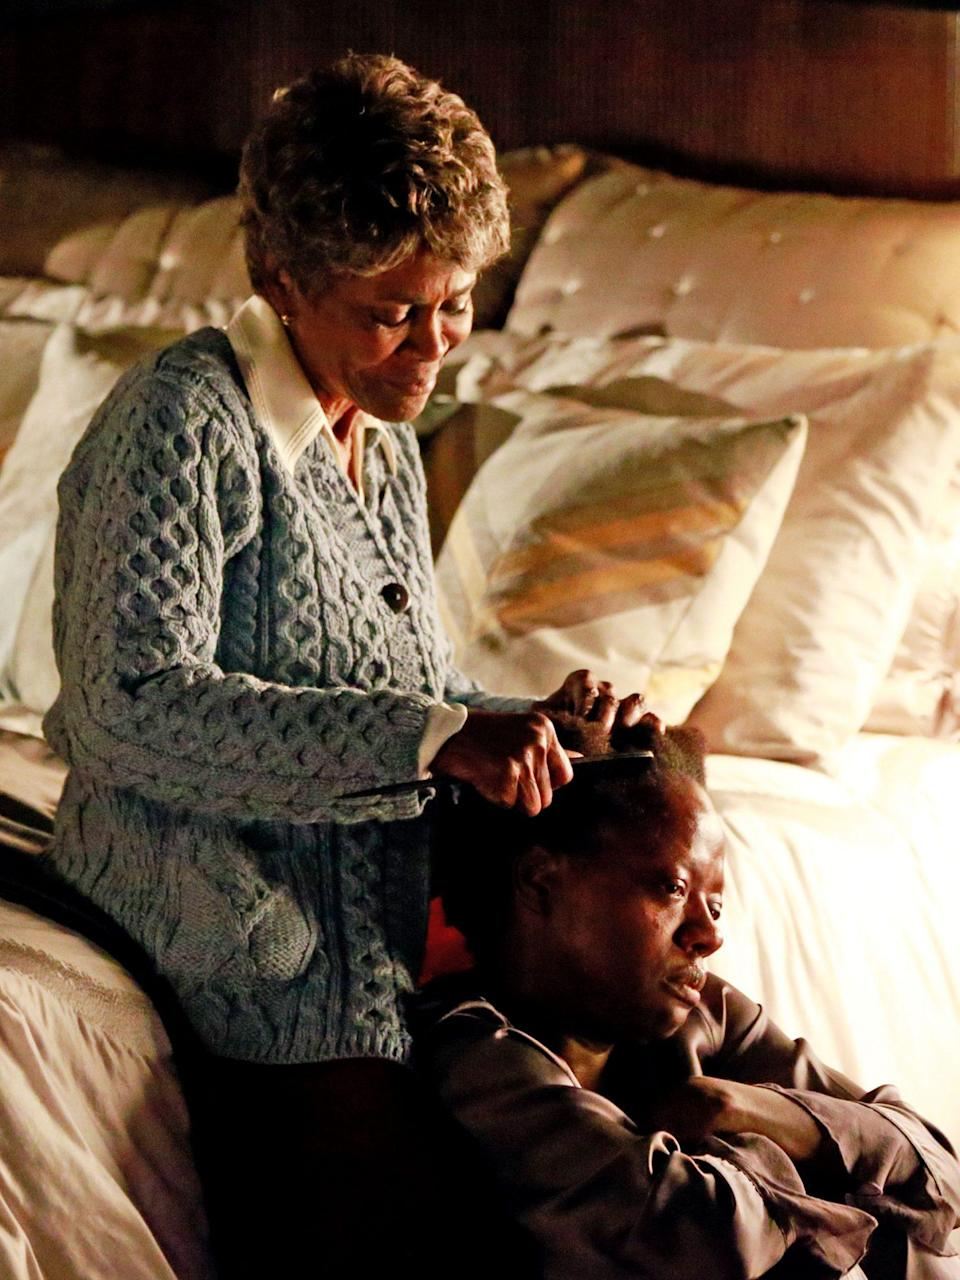 <p>There was truly no better pairing for this scene than Viola Davis, who played Annalise Keating, and the great Cicely Tyson, who performed as her mother. During this episode, Annalise falls apart emotionally, and looks for comfort by going back to a childhood ritual Black women know so well: sitting between her mother's knees and letting her mom comb her hair. </p>